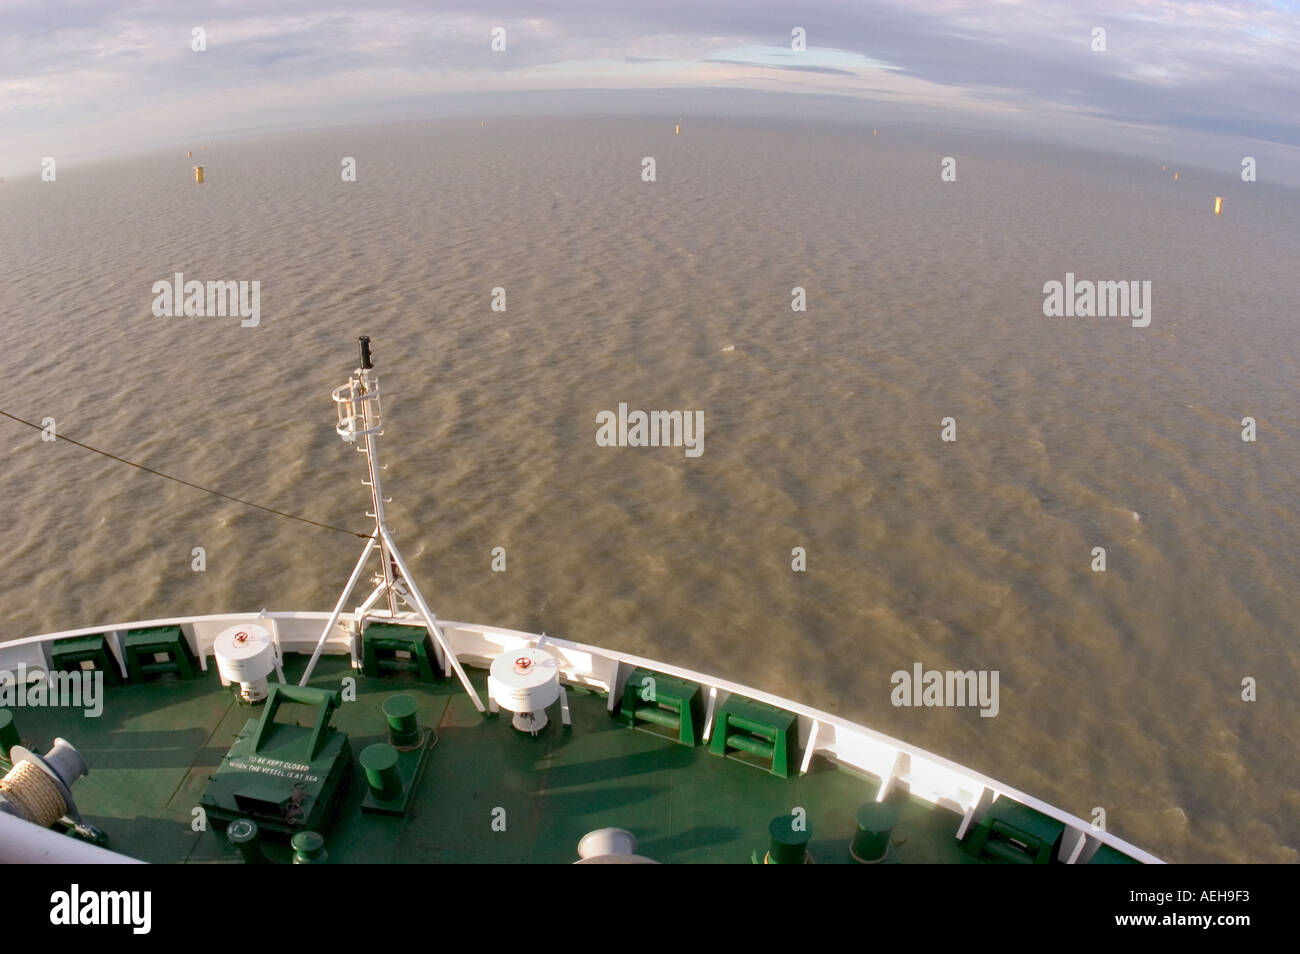 kentish flats windfarm foundations inplace from the deck of the Jakup ship Resolution  - Stock Image